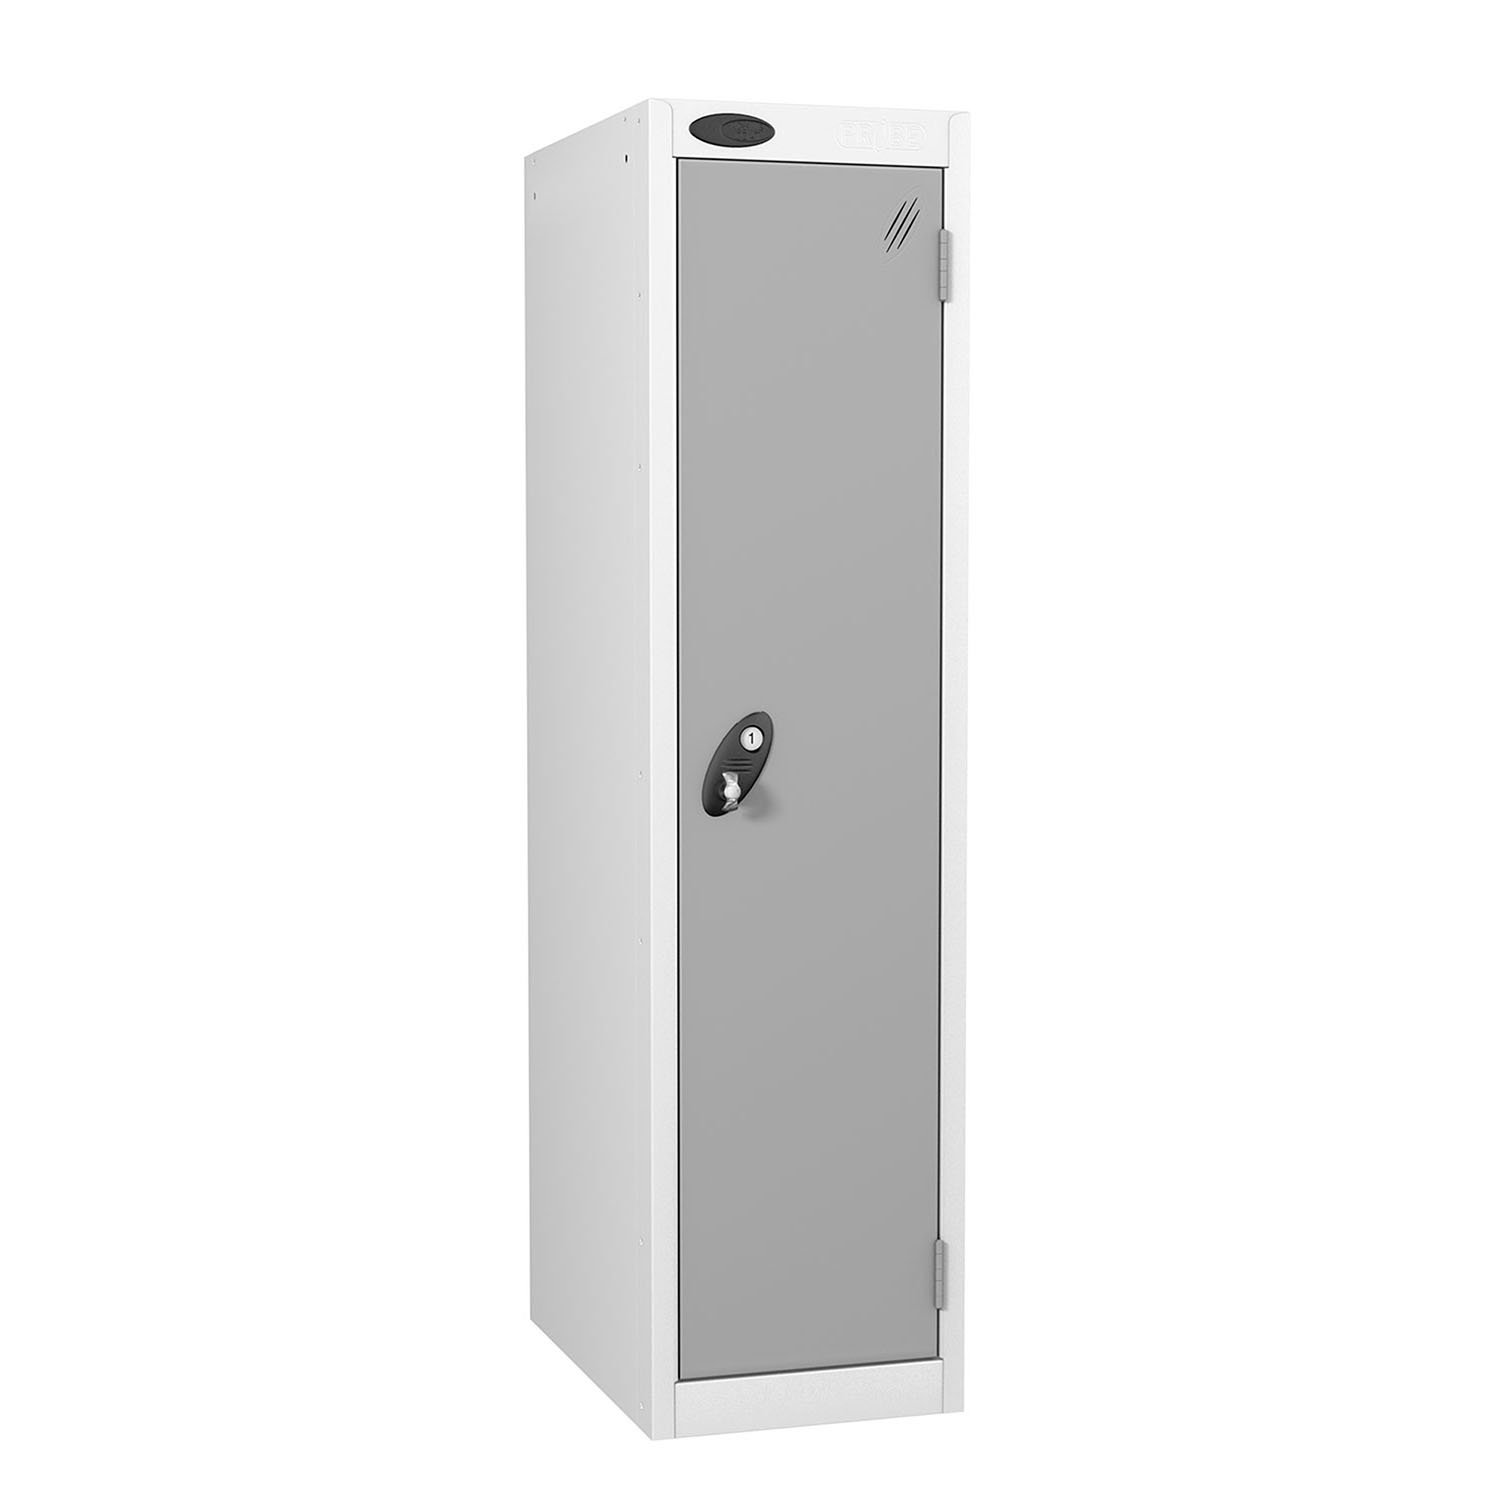 Probe 1 door low locker in silver colour